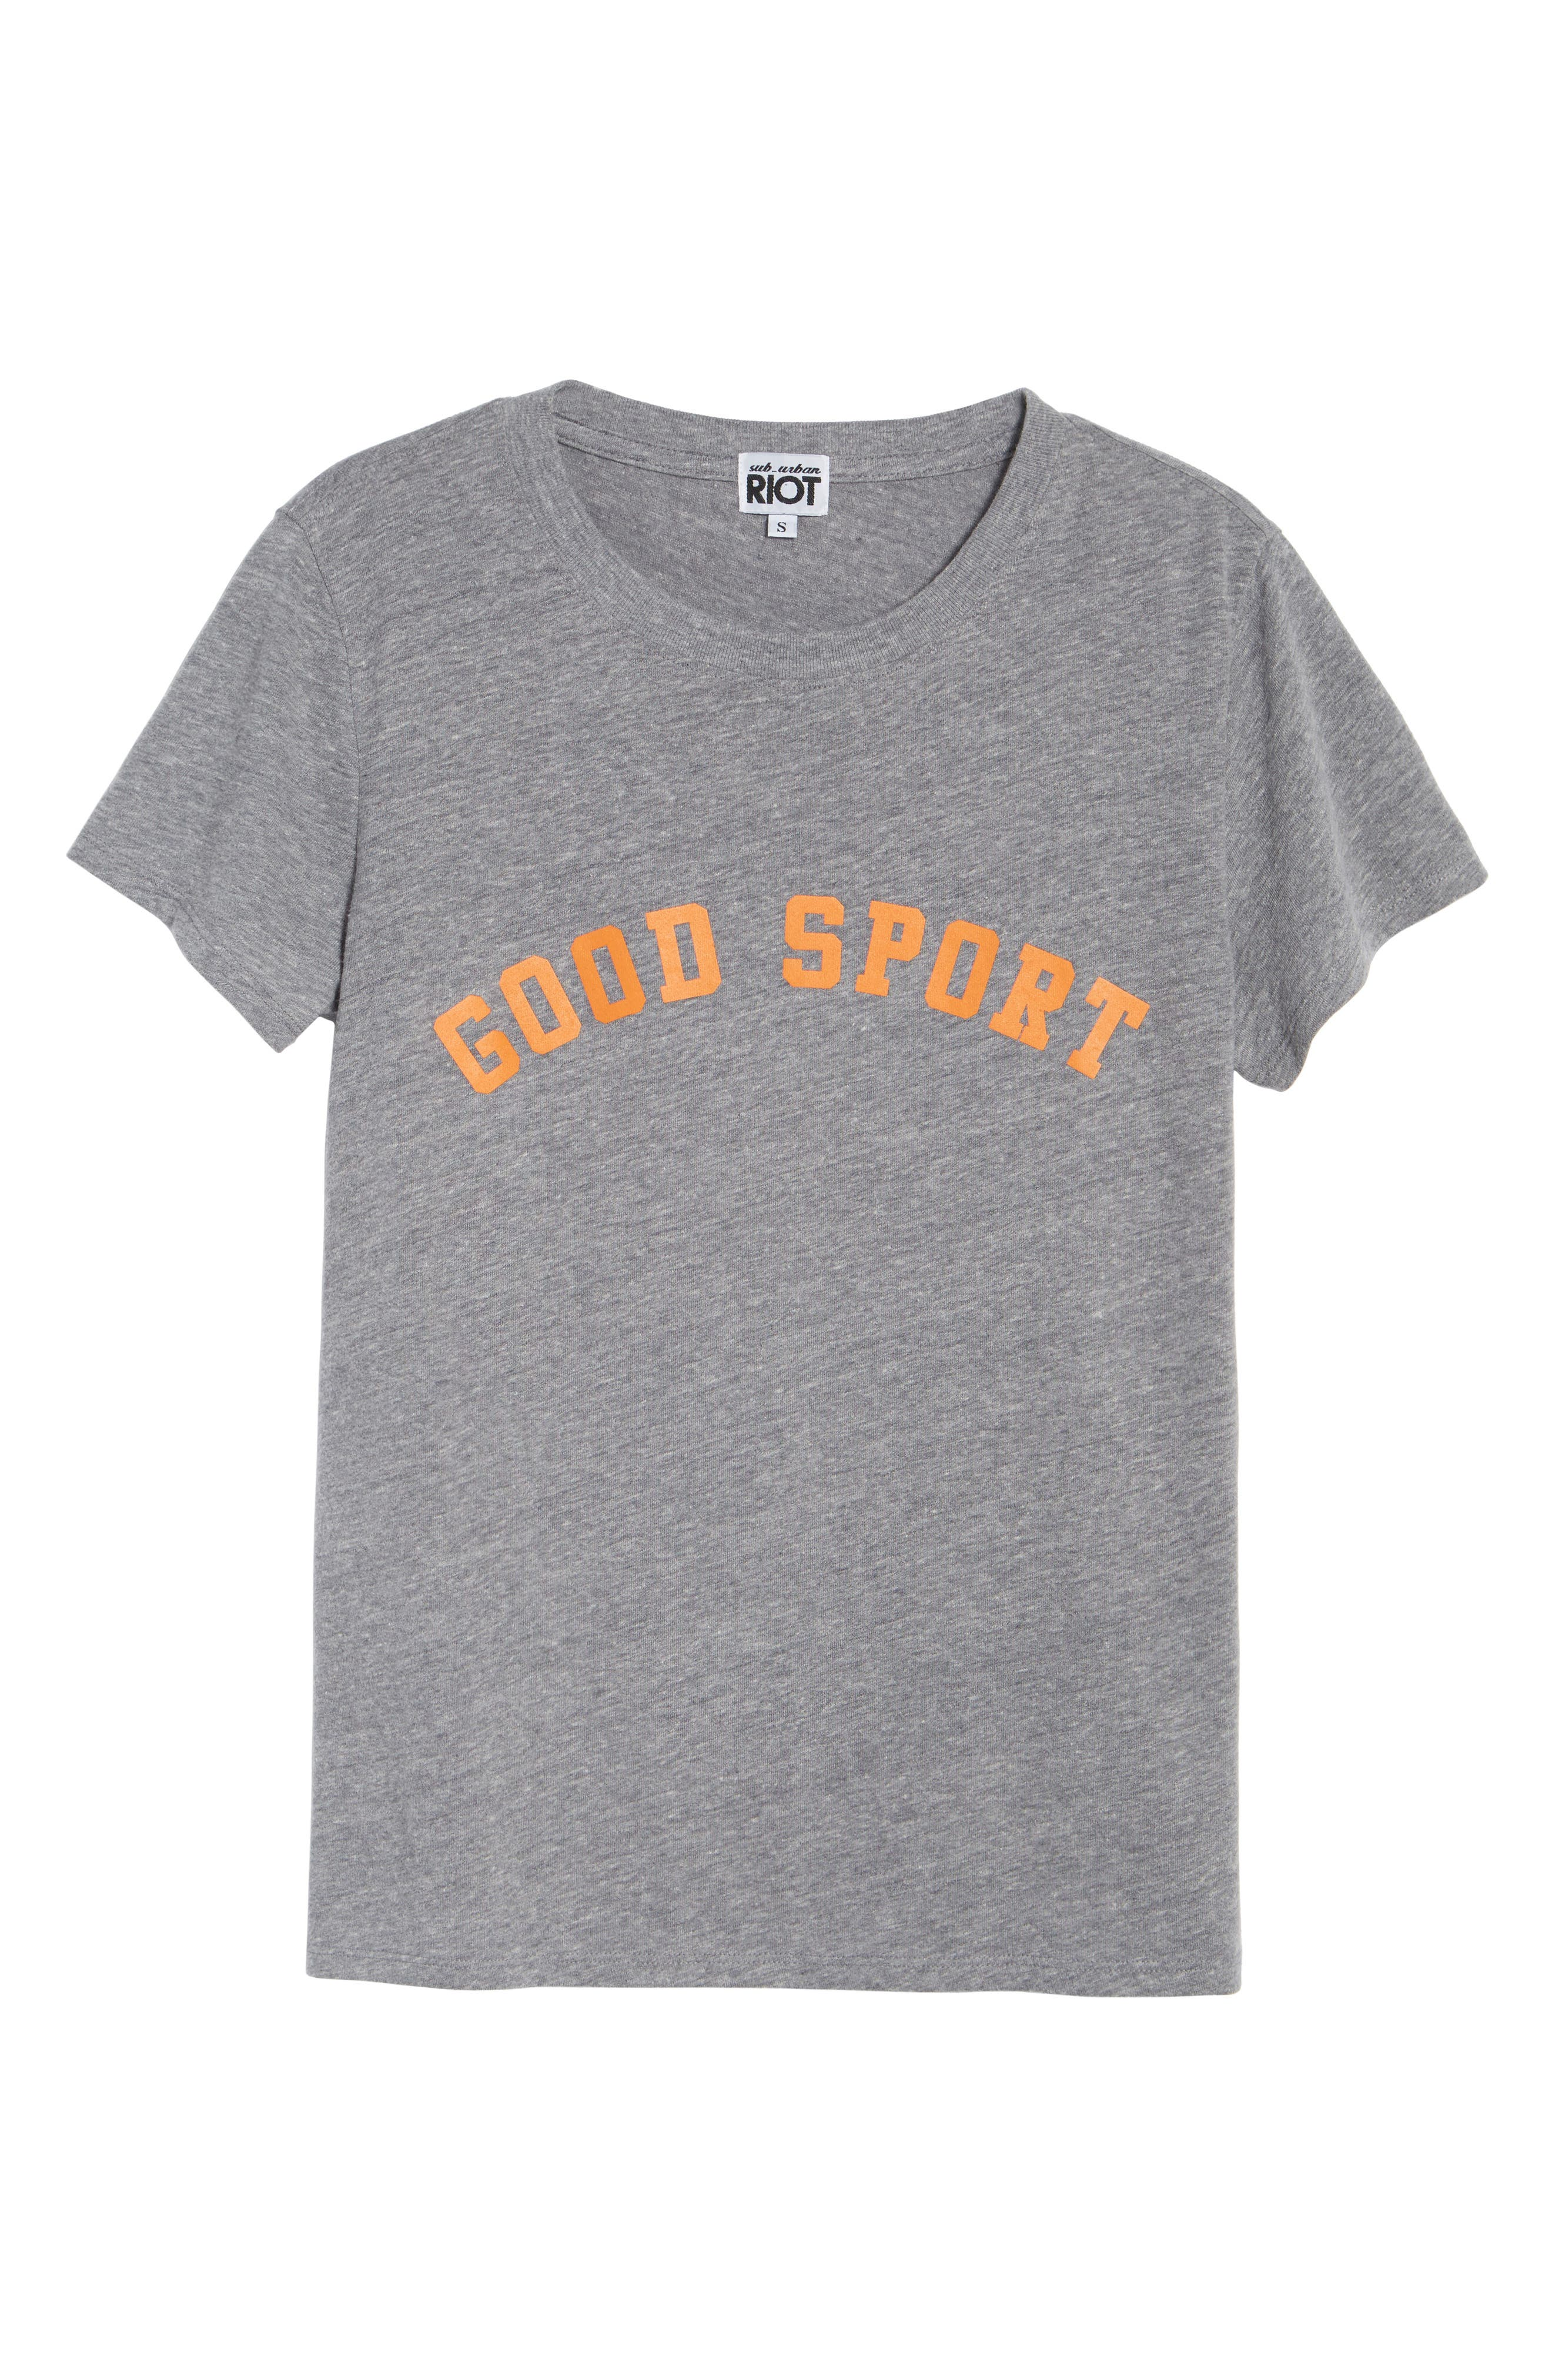 Good Sport Graphic Tee,                             Alternate thumbnail 6, color,                             050